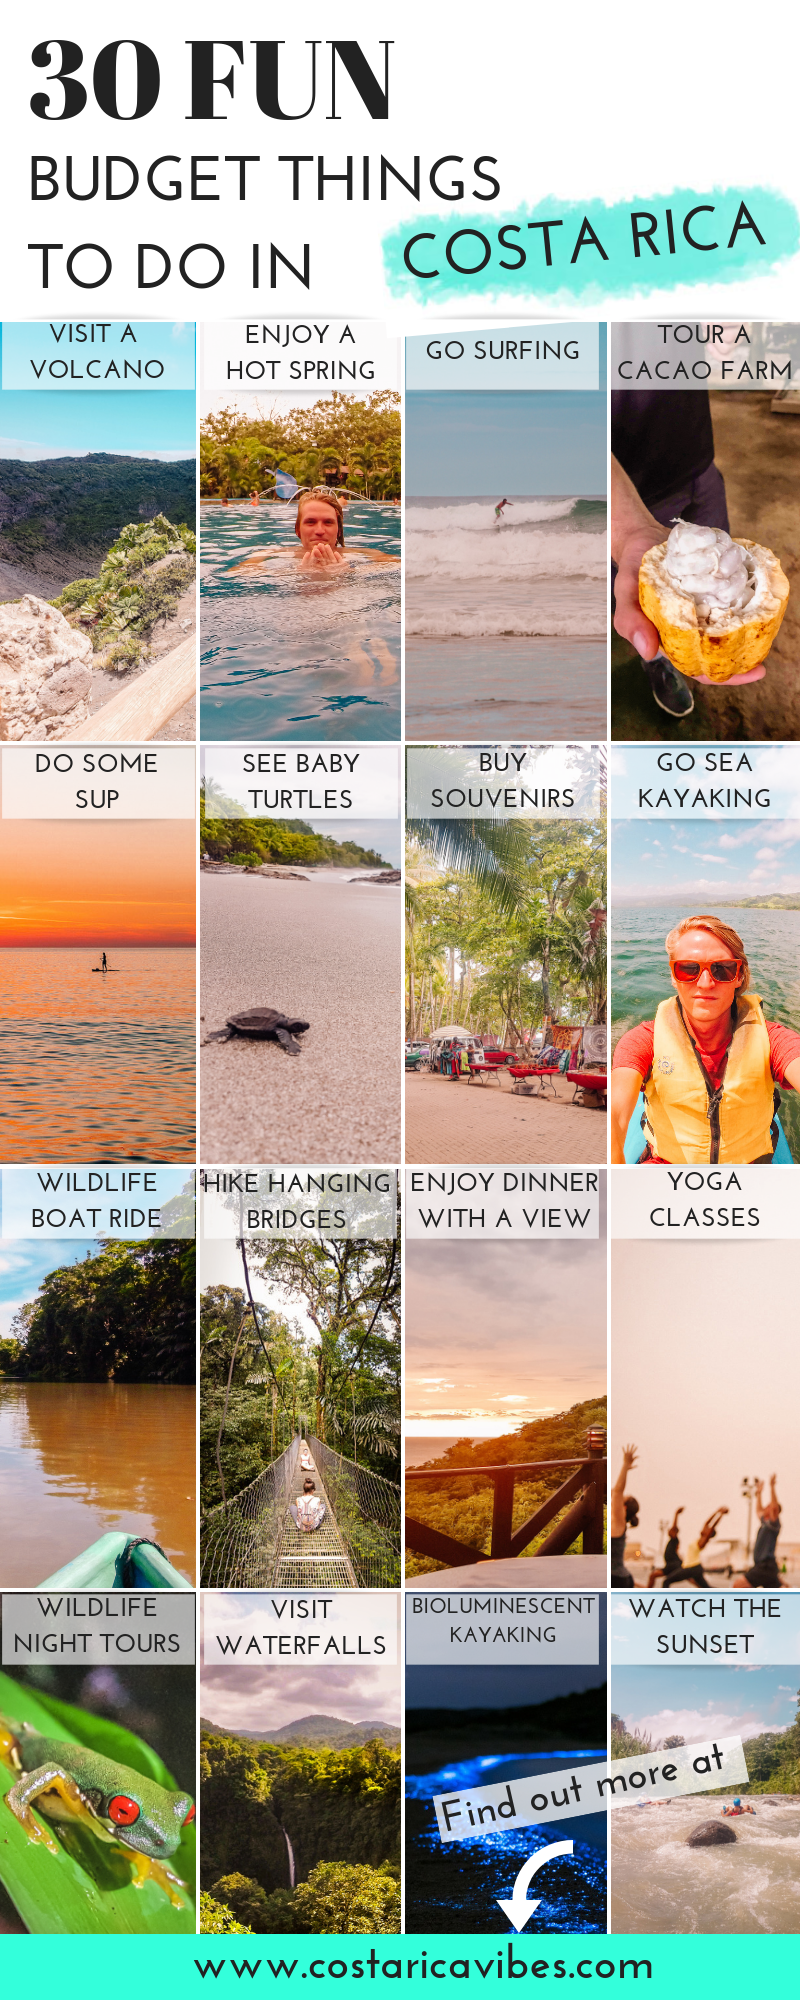 30 Things to Do in Costa Rica on a Budget